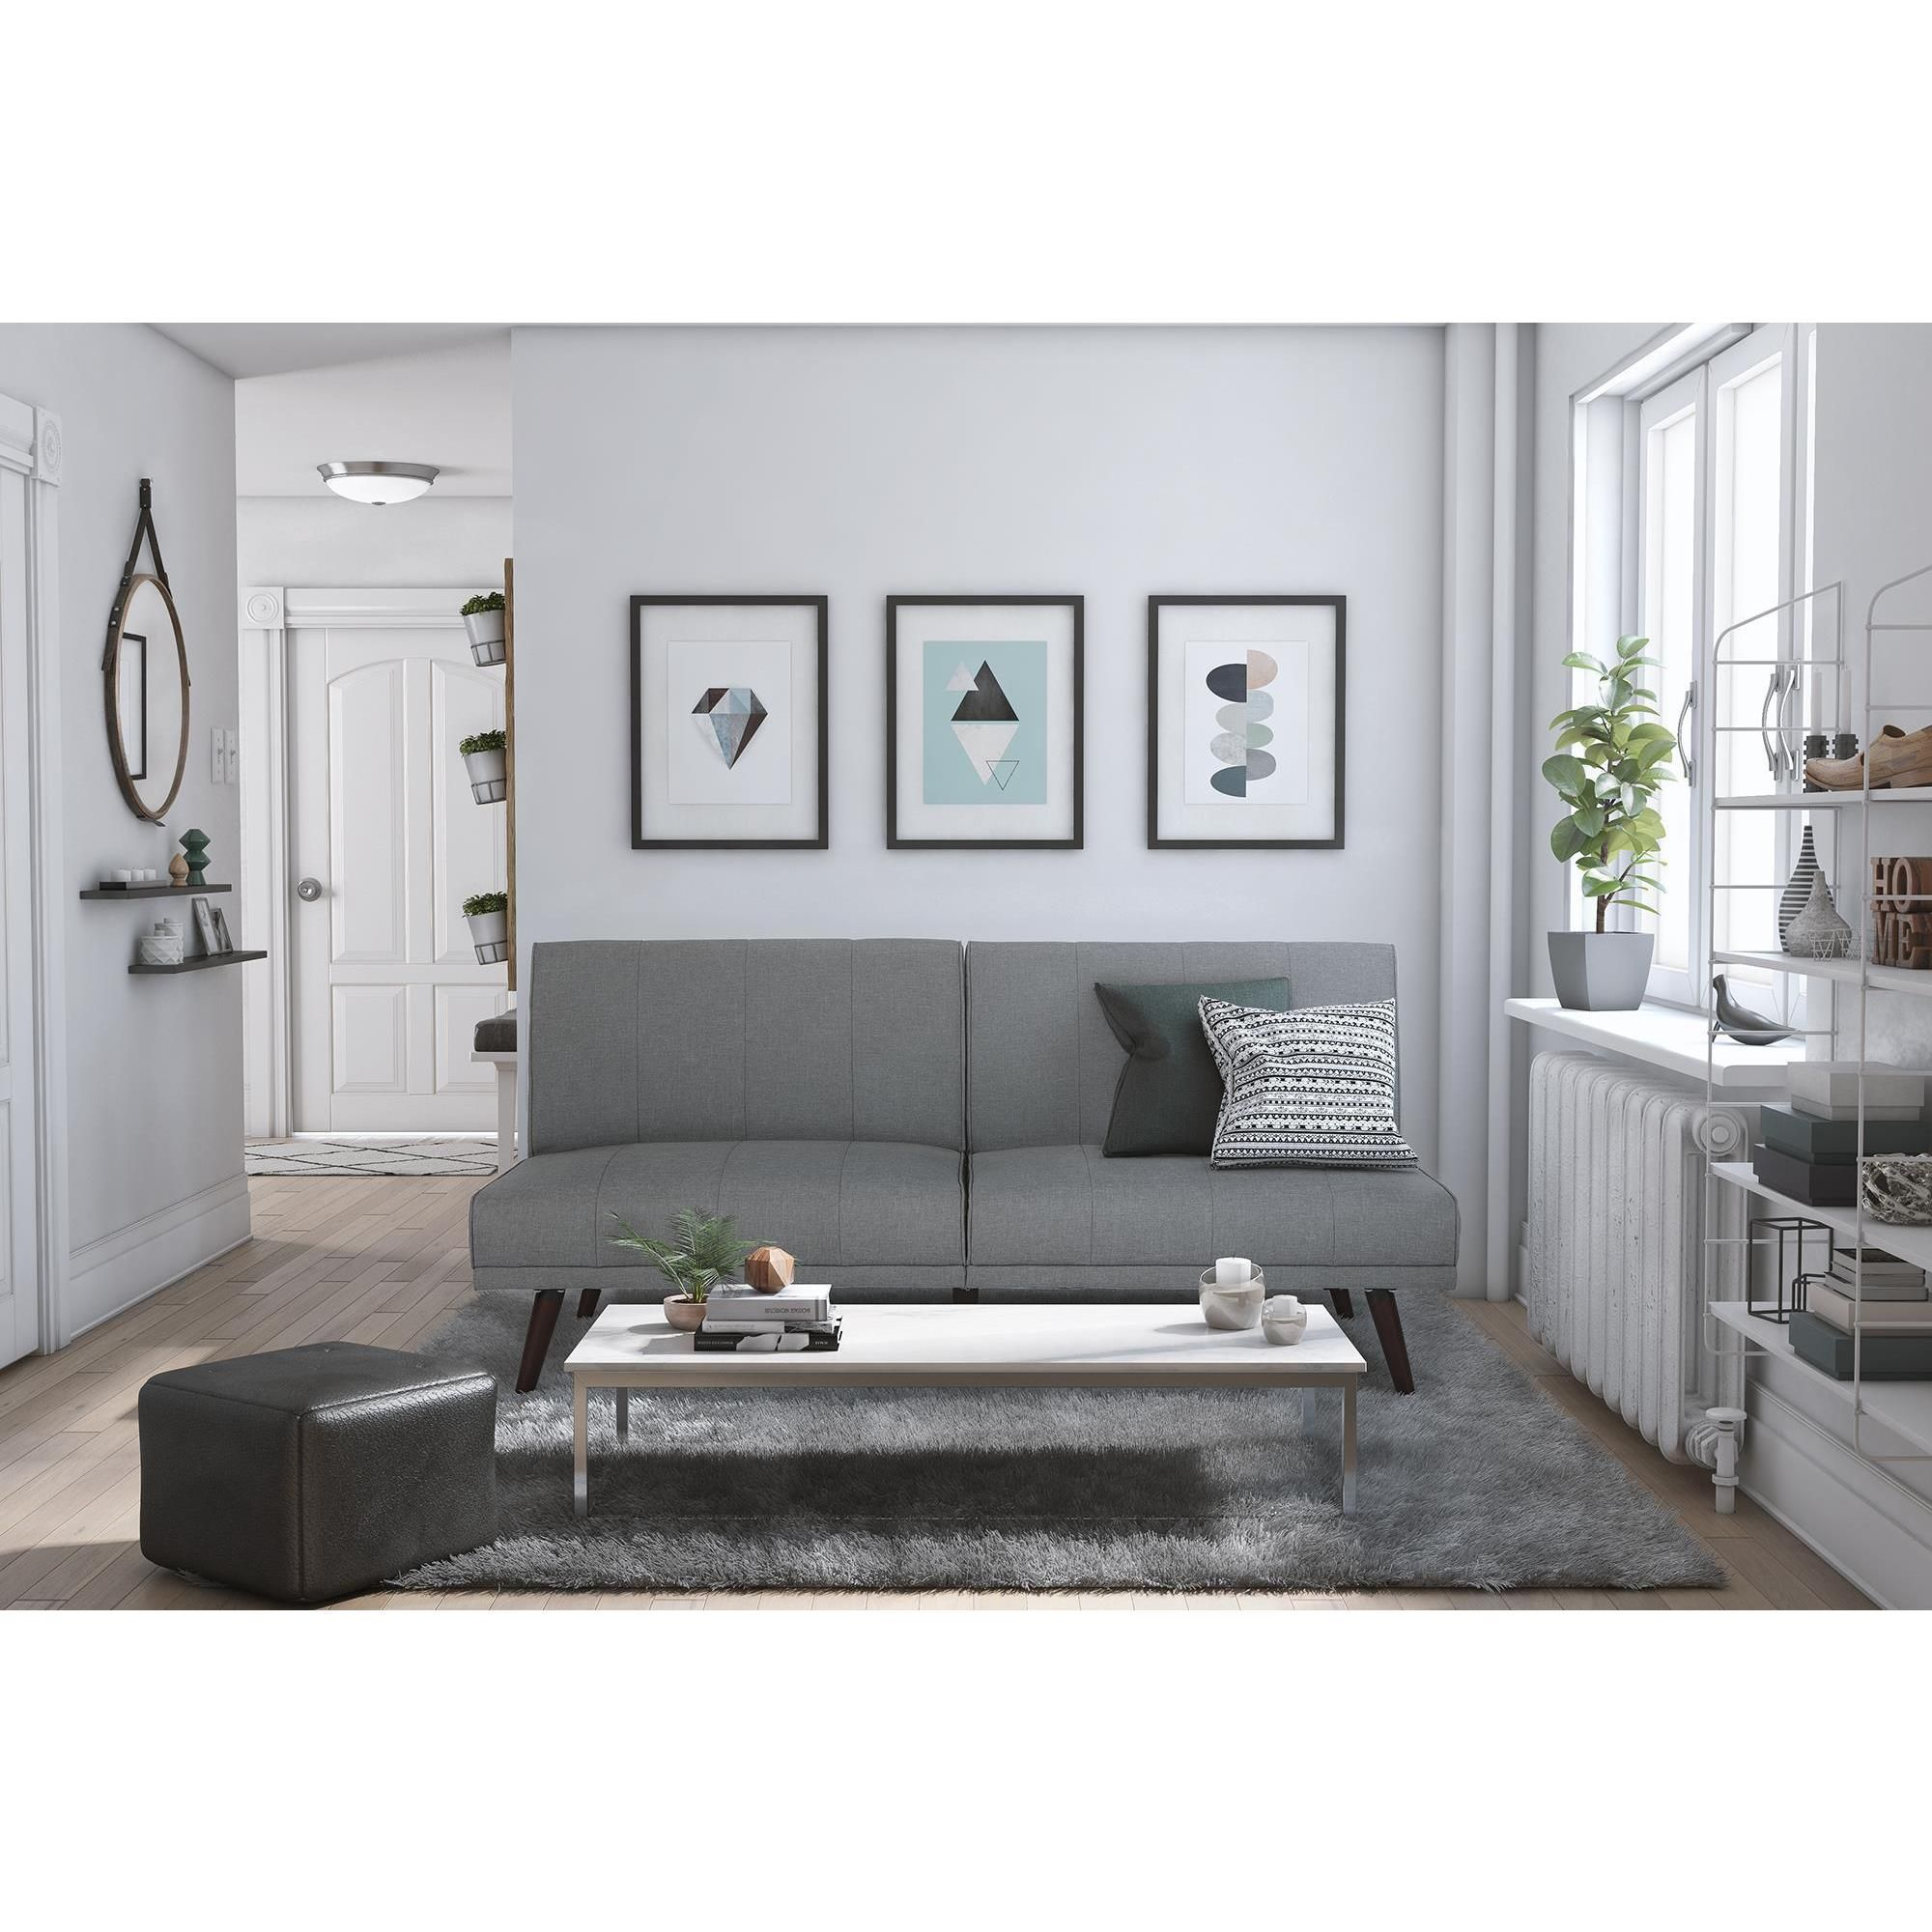 linen room futon couch pine convertible lone furniture itm gray dhp sleeper futons living sofa